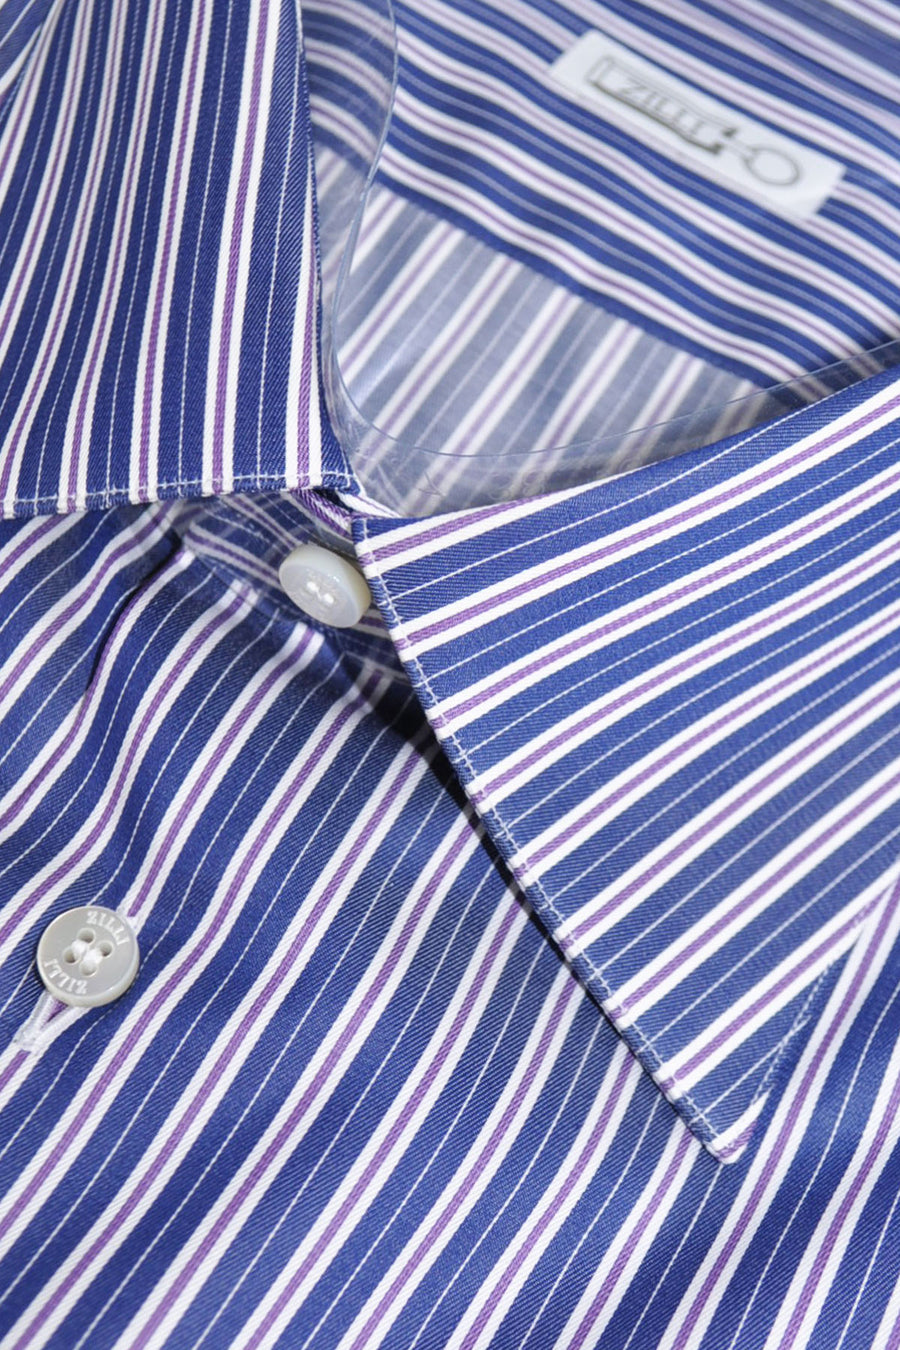 Zilli Shirt White Navy Purple Stripes